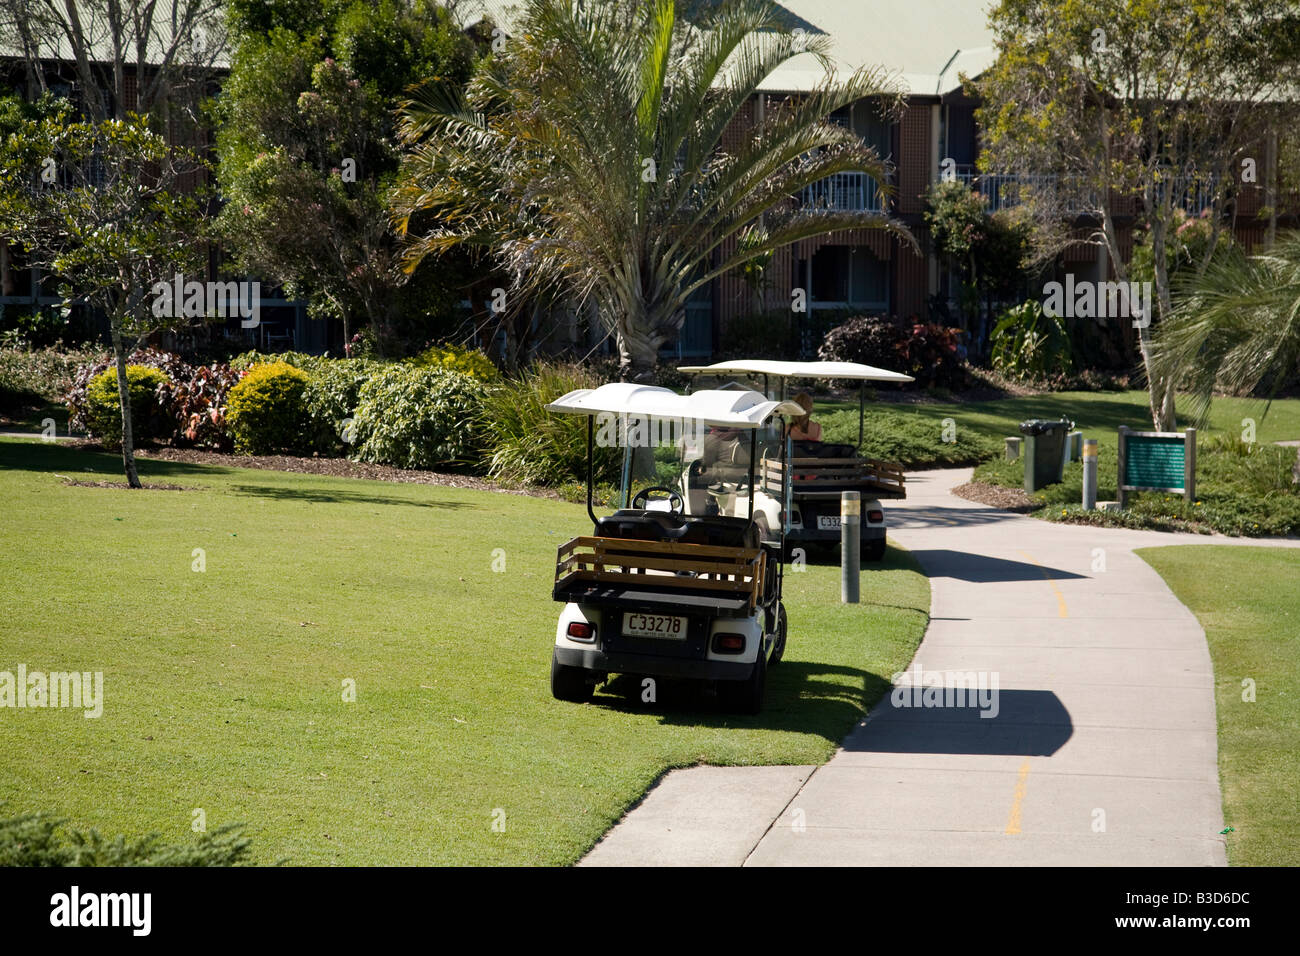 two golf cart leisure buggies parked on the resort complex lawn,queensland,australia - Stock Image